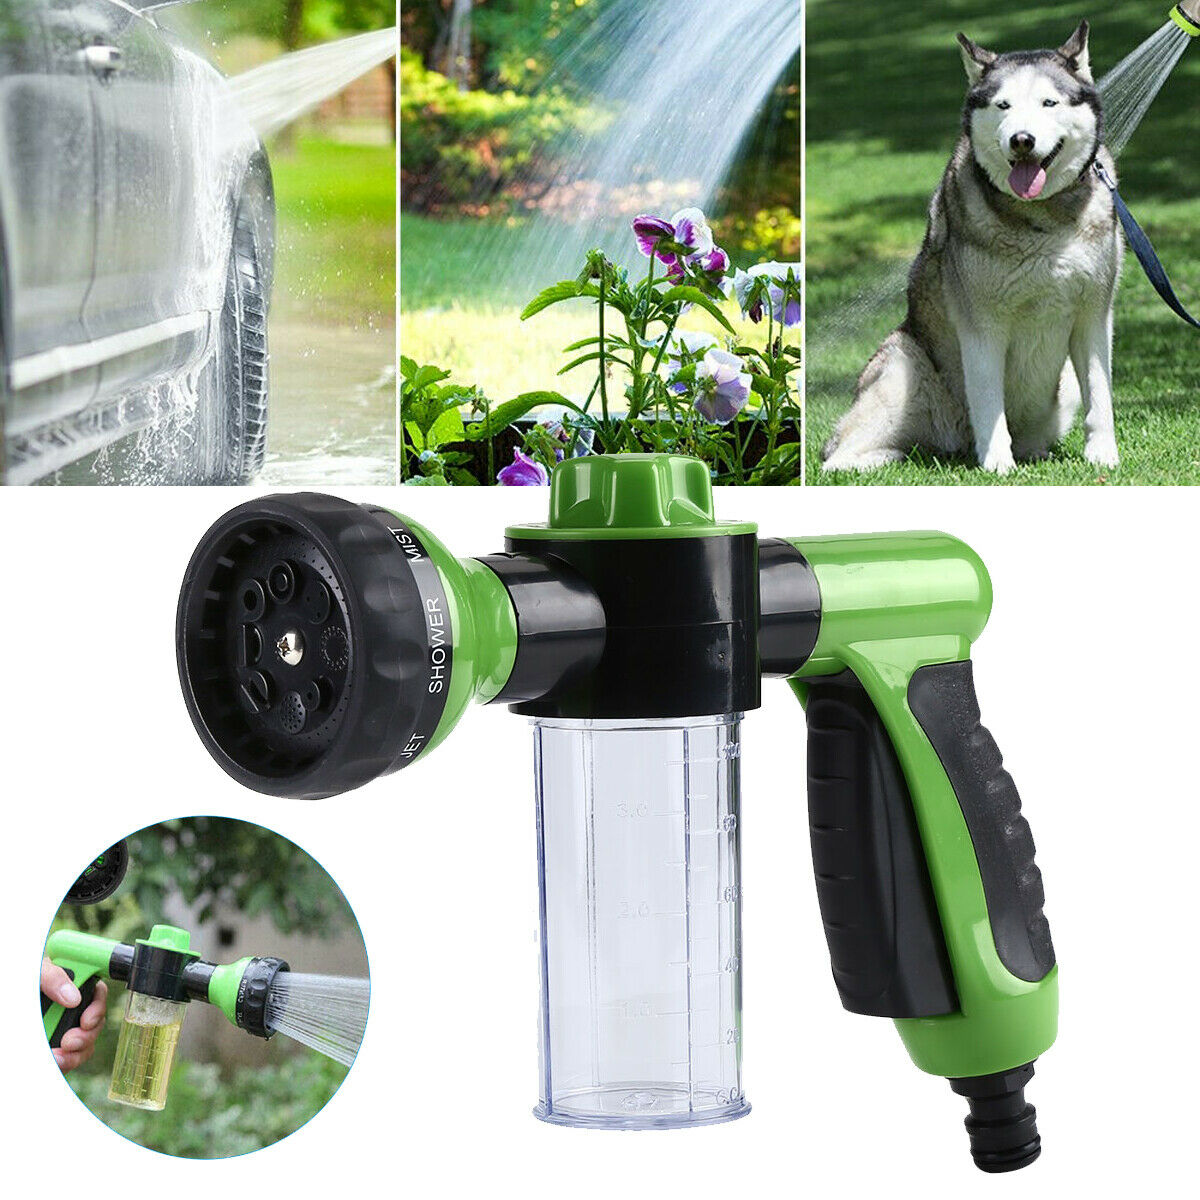 High-Pressure Sprayer Nozzle Hose Gun Car Pet Wash Cleaning